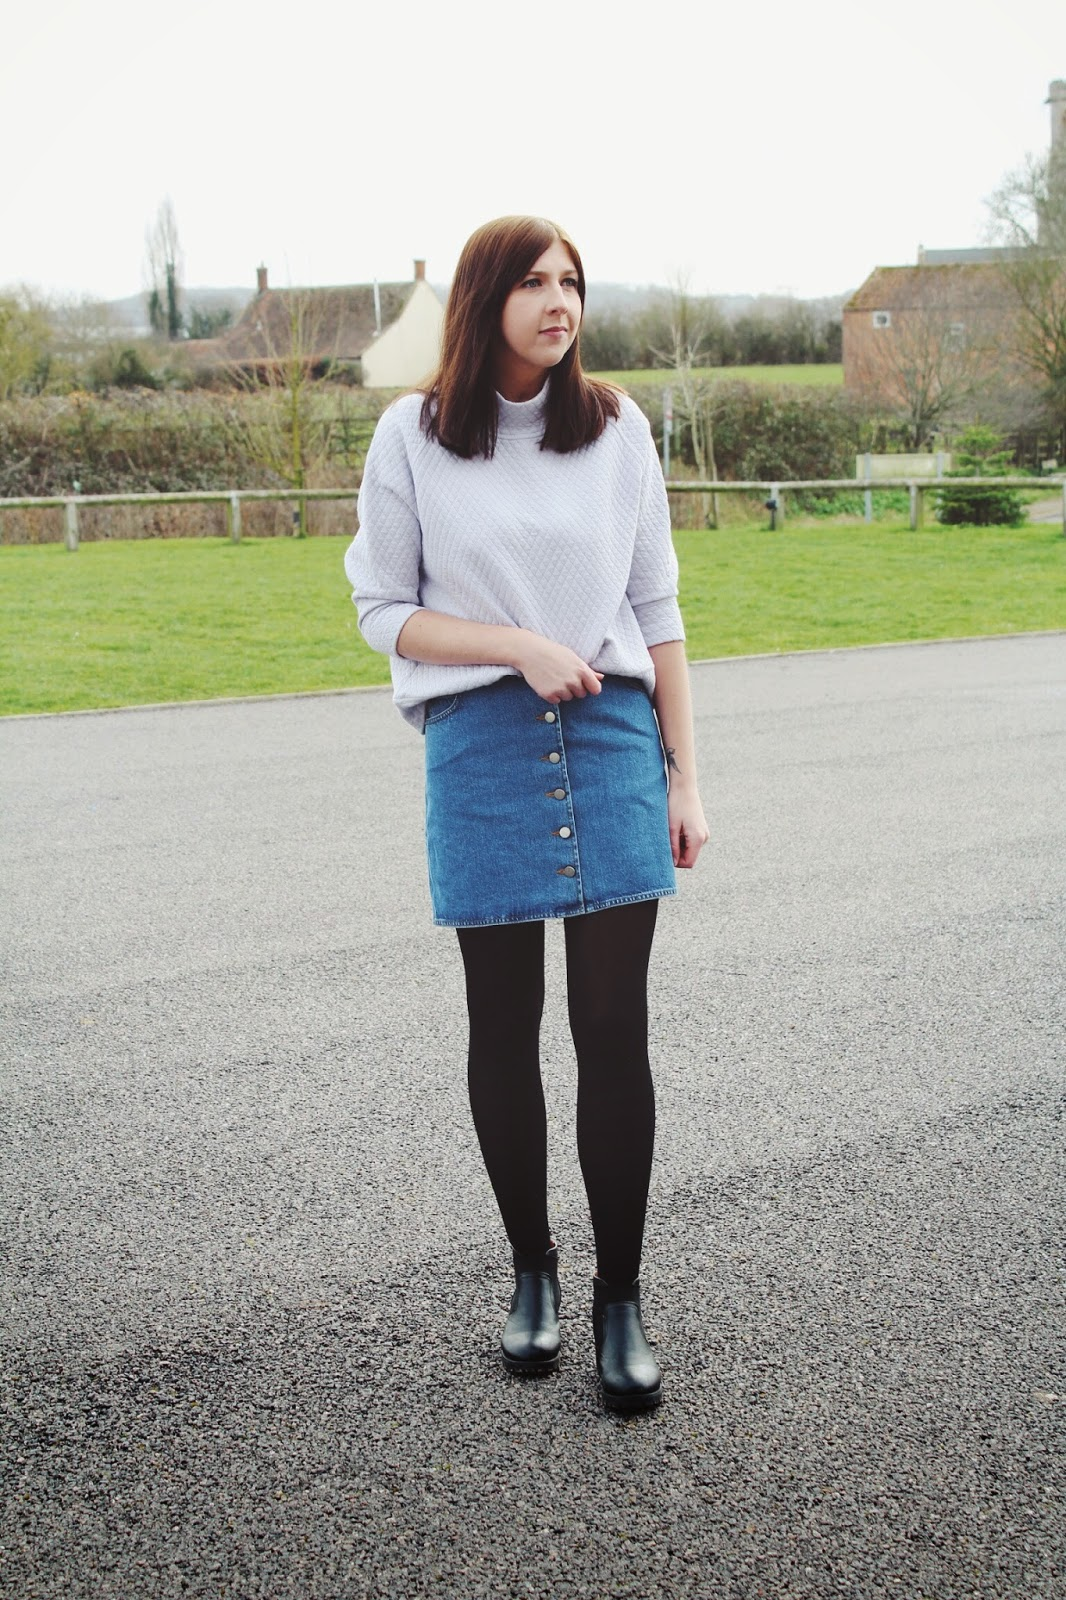 fashion, halcyon velvet, fashionbloggers, fashionblogger, another8clothing, tailor, asos, asseenonme, wiw, whatimwearing, ootd, outfitoftheday, lotd, lookoftheday, topshop, lilac, springfashion, 70strend, fbloggers